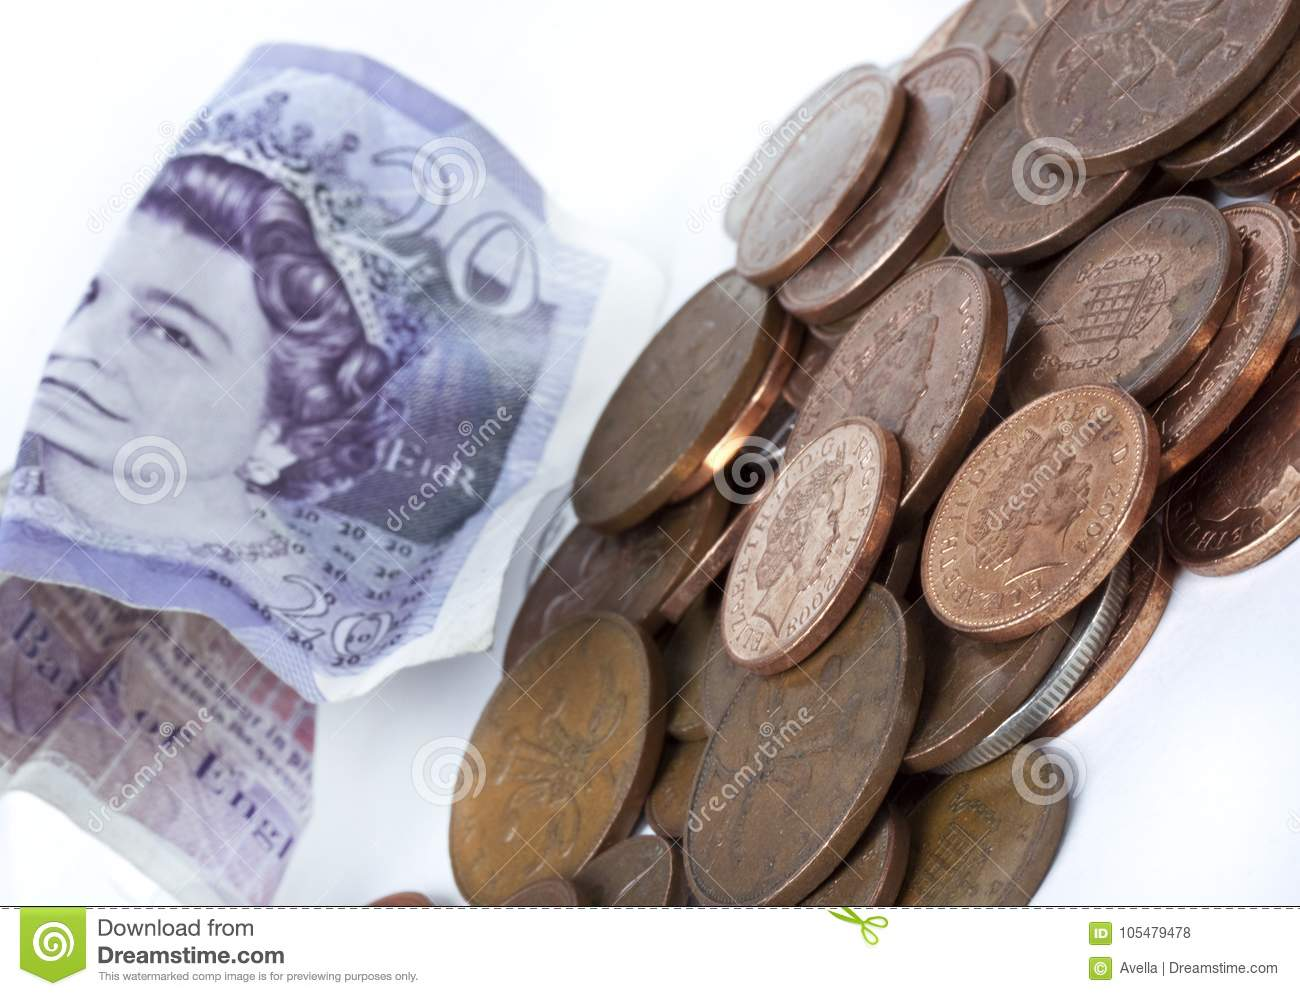 British pence  Coins editorial stock photo  Image of federal - 105479478